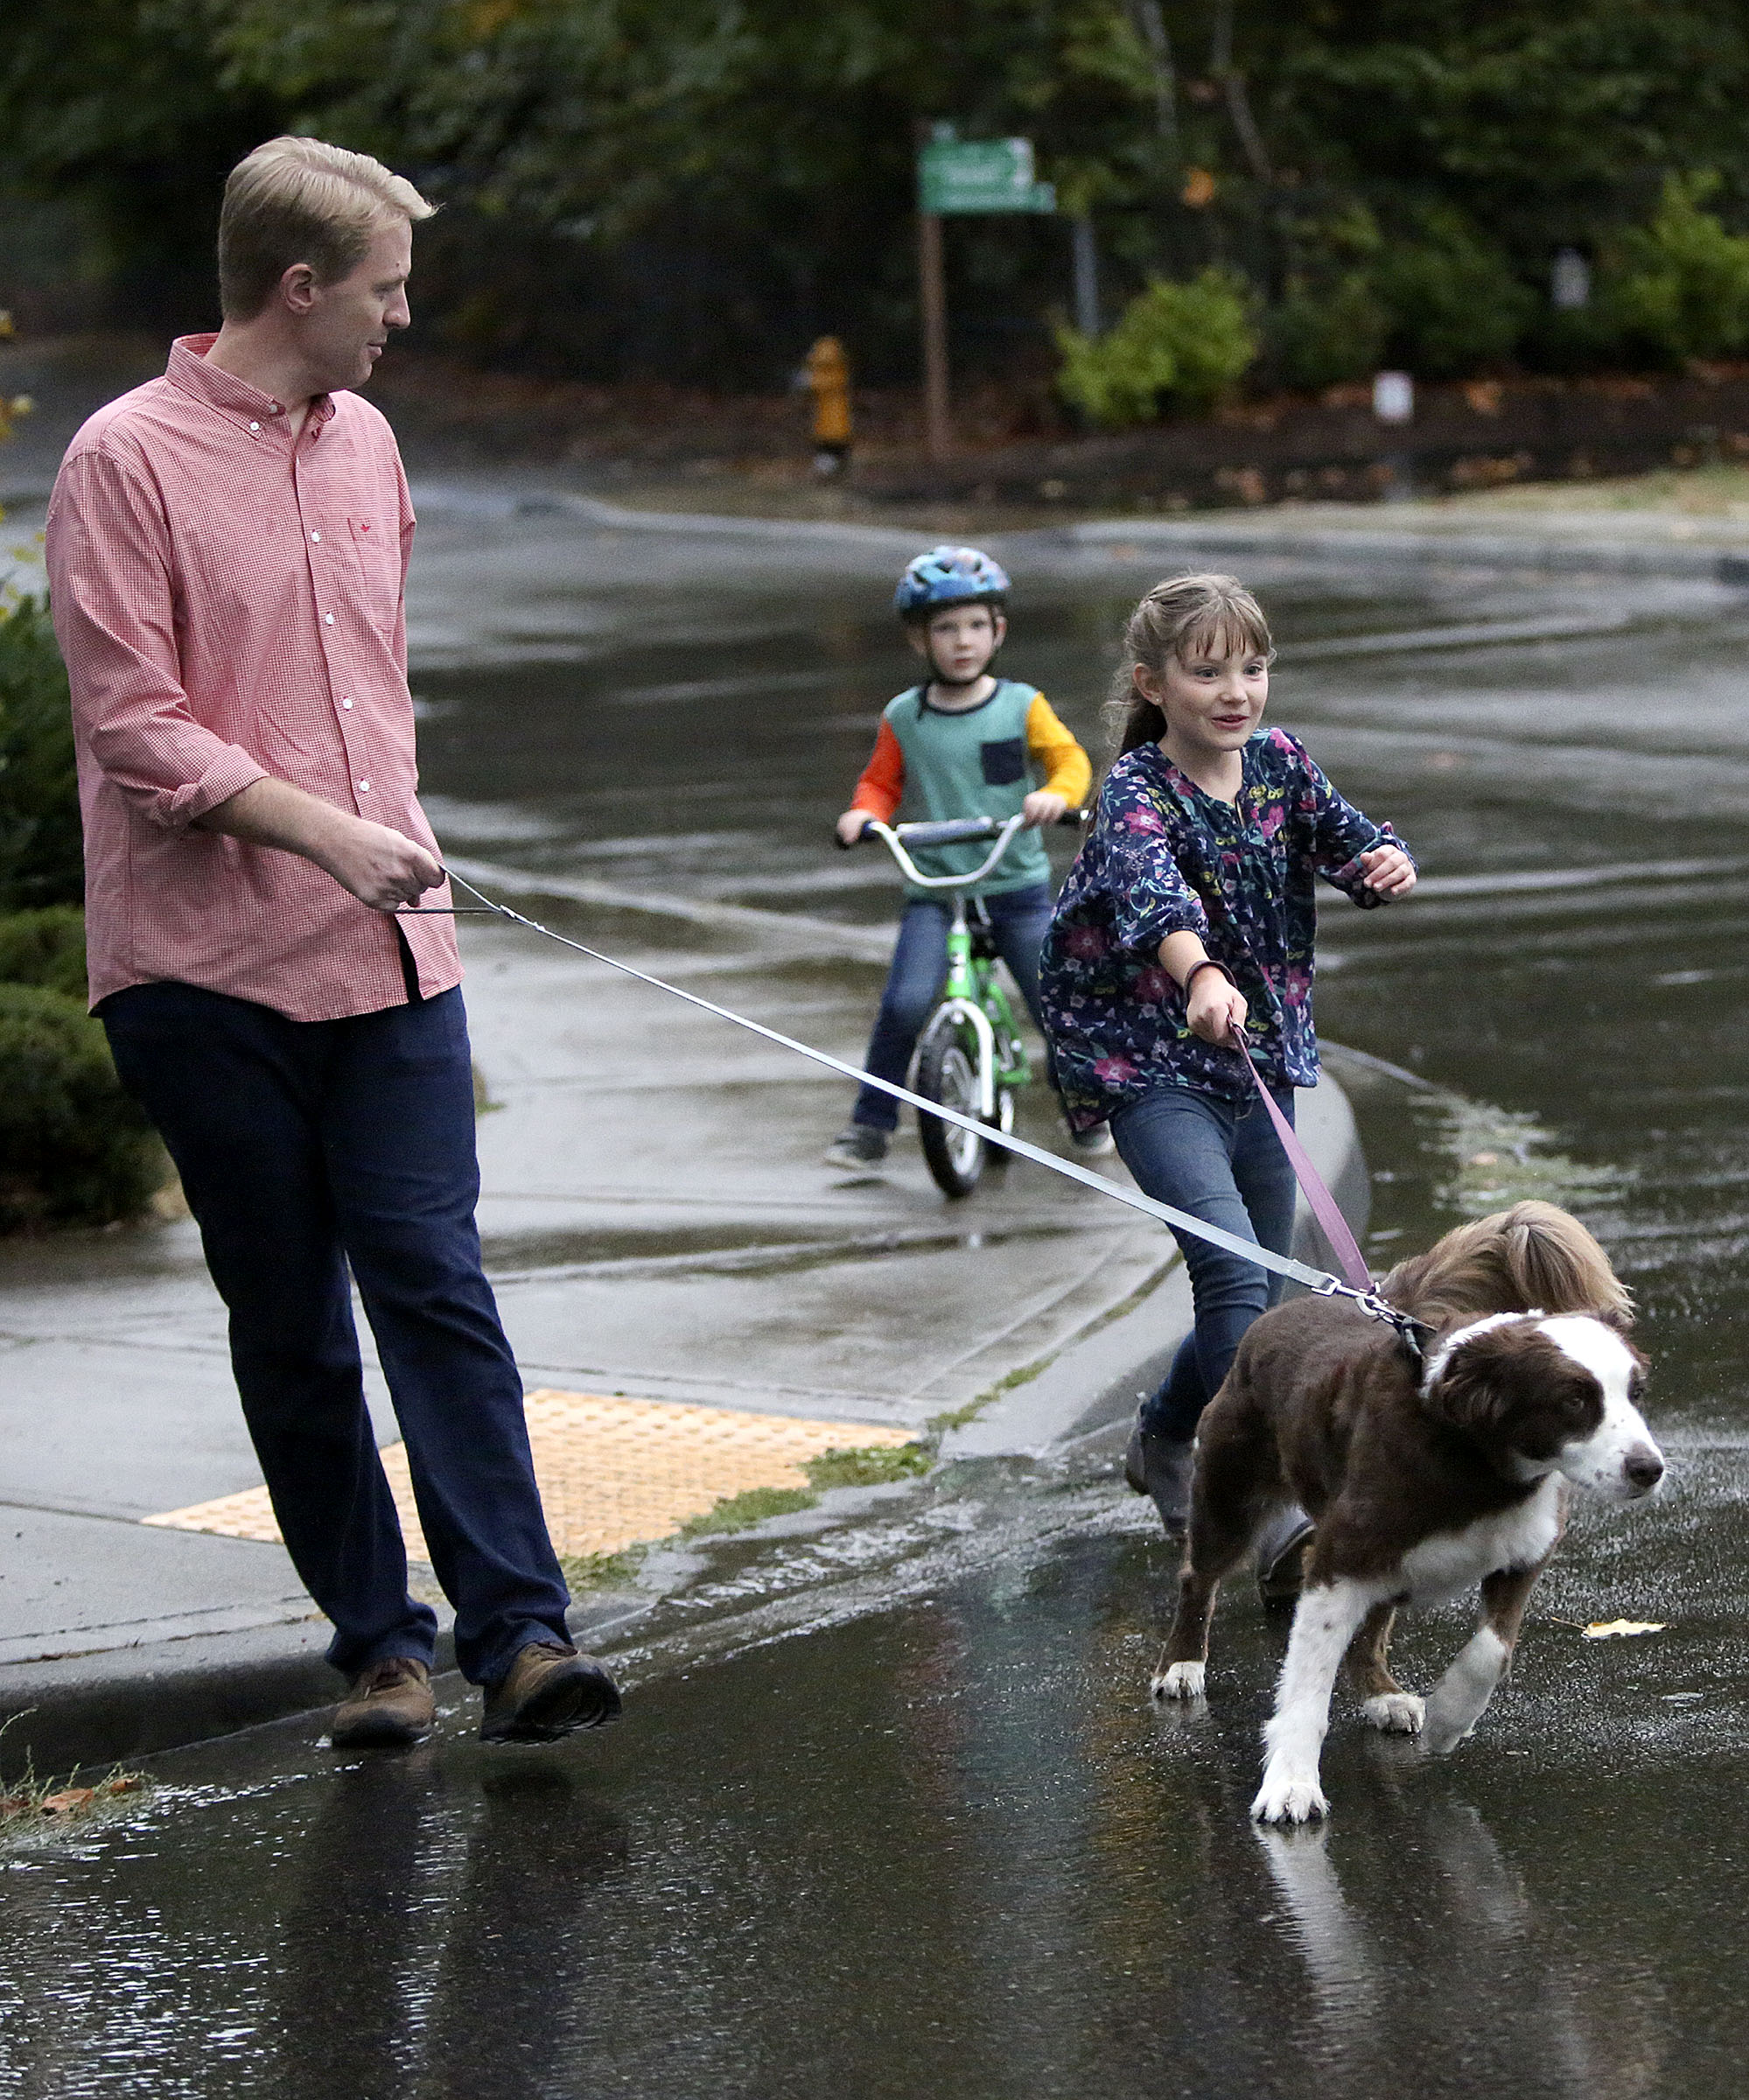 Justin, Daniel and Emilia Allen walk home with their dog Lou in Renton, Wash., on Friday, Sept. 14, 2018.